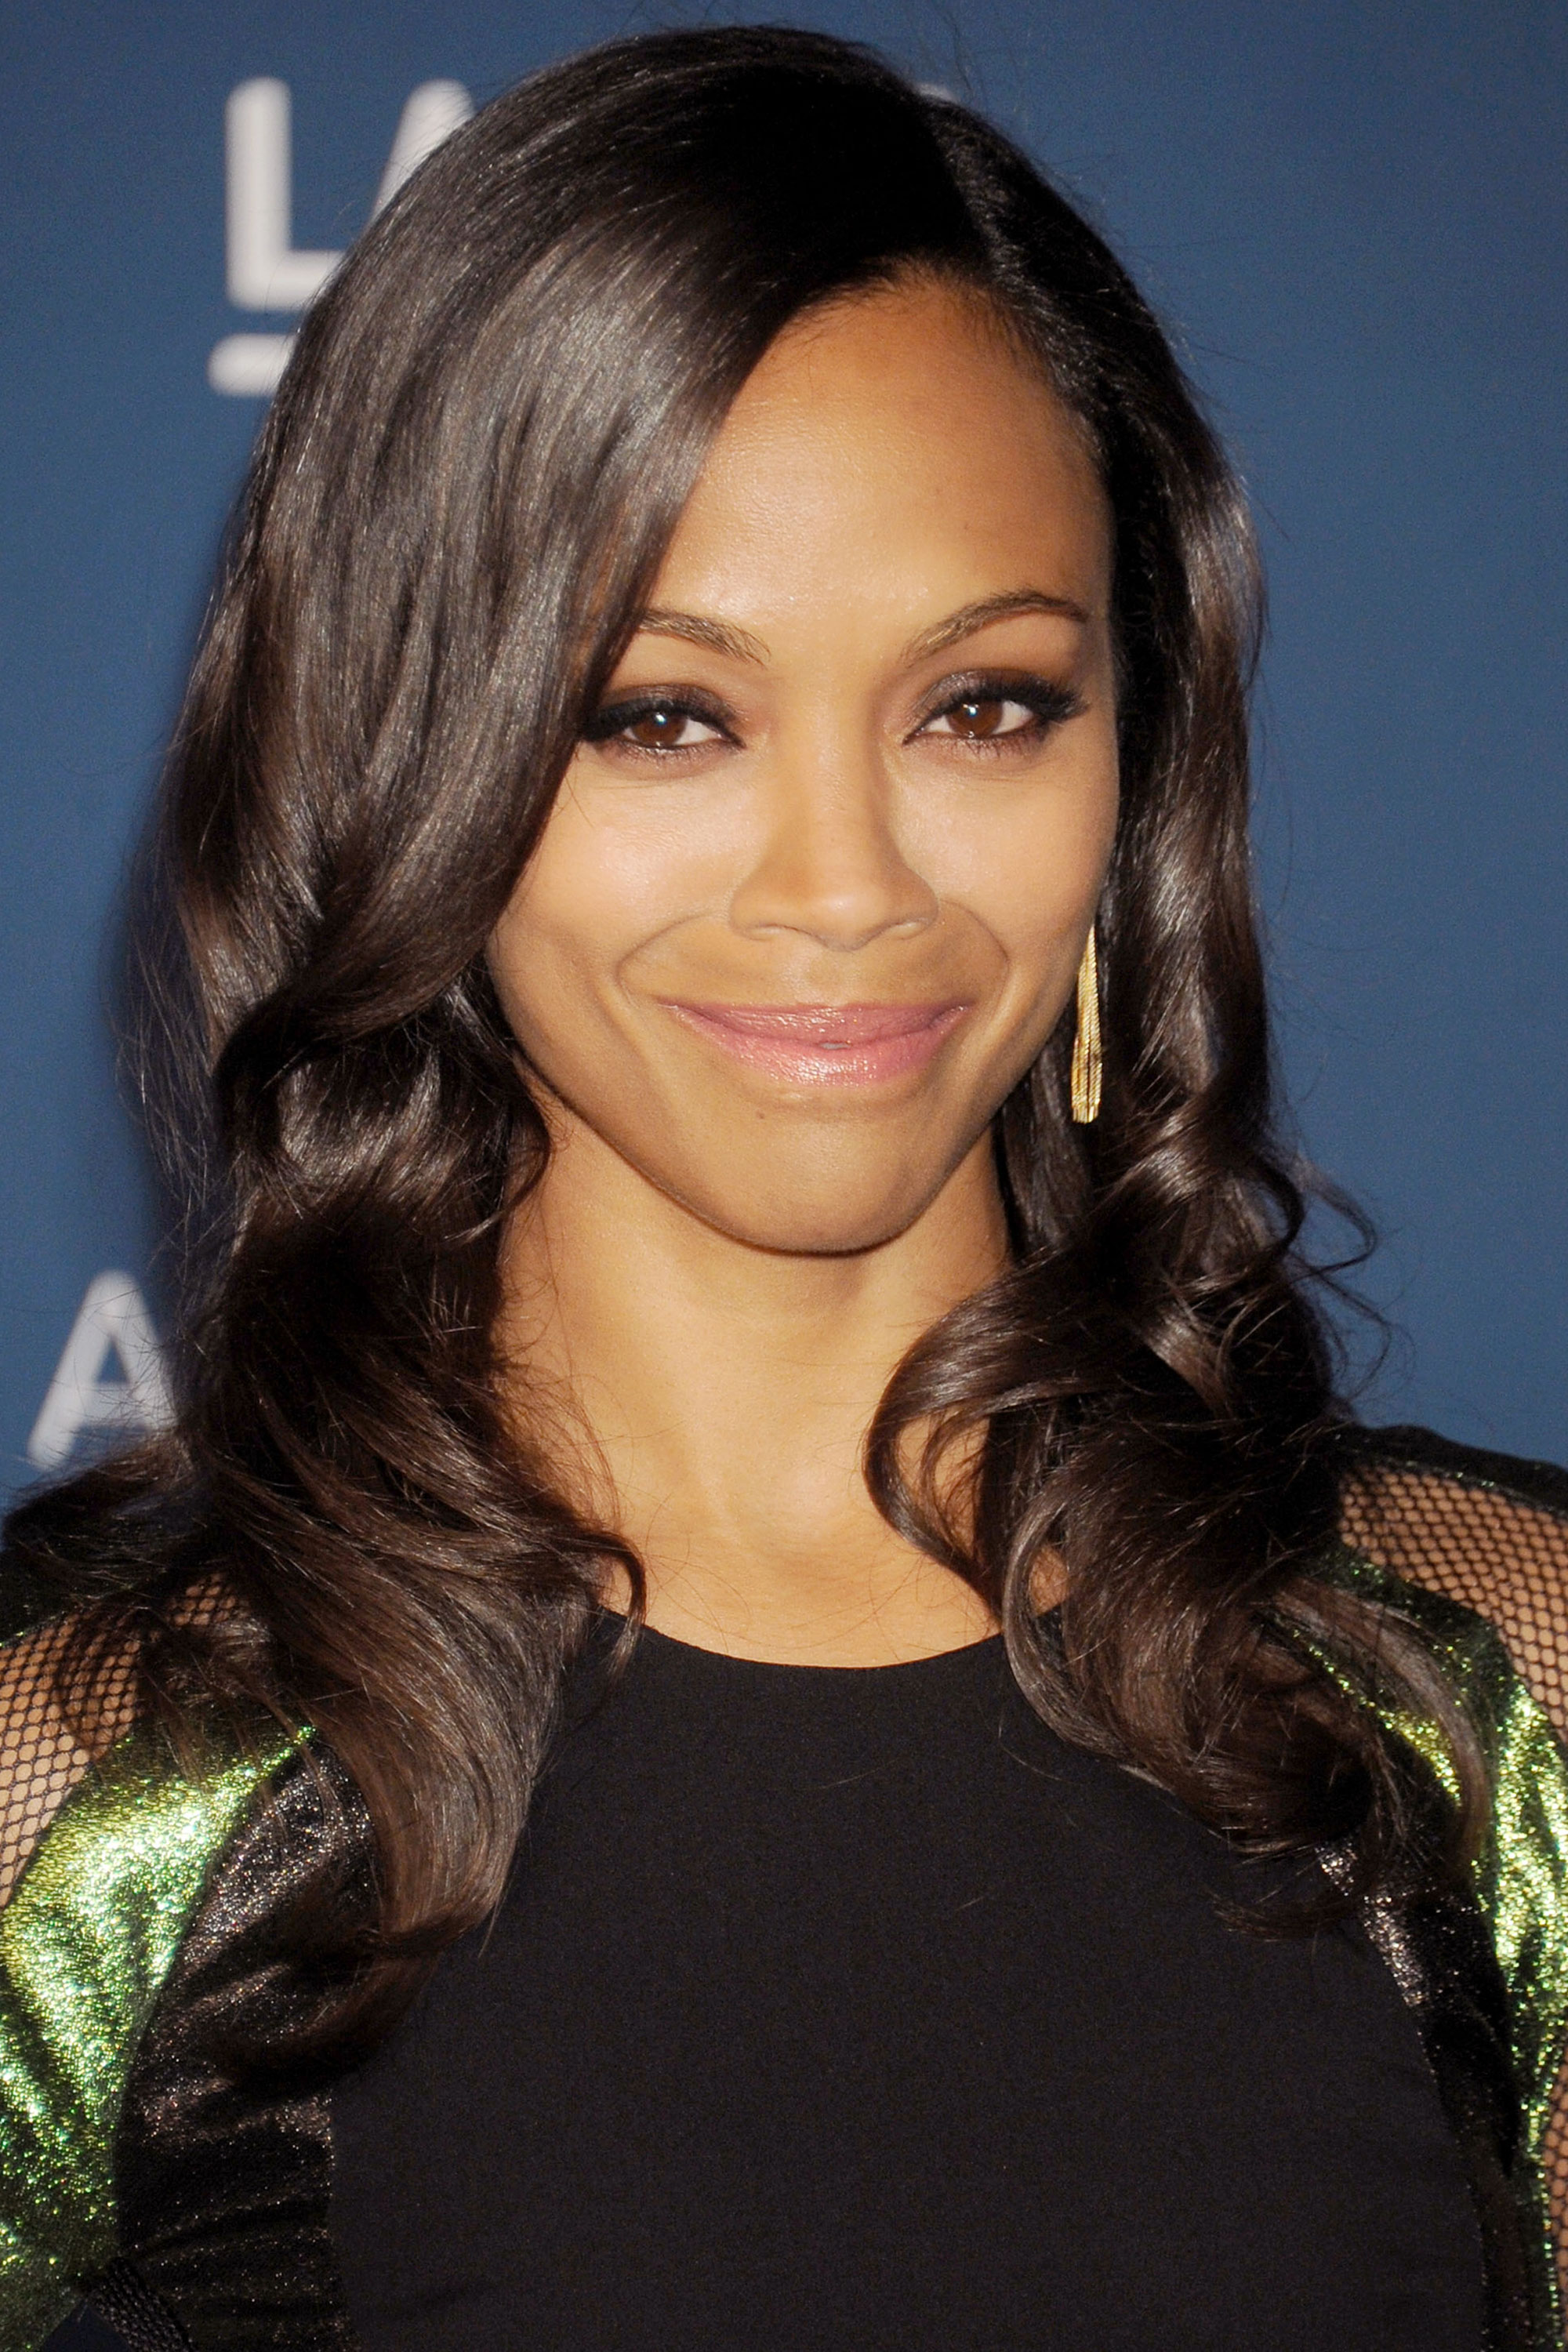 Swell 33 Best Medium Hairstyles Celebrities With Shoulder Length Haircuts Short Hairstyles For Black Women Fulllsitofus